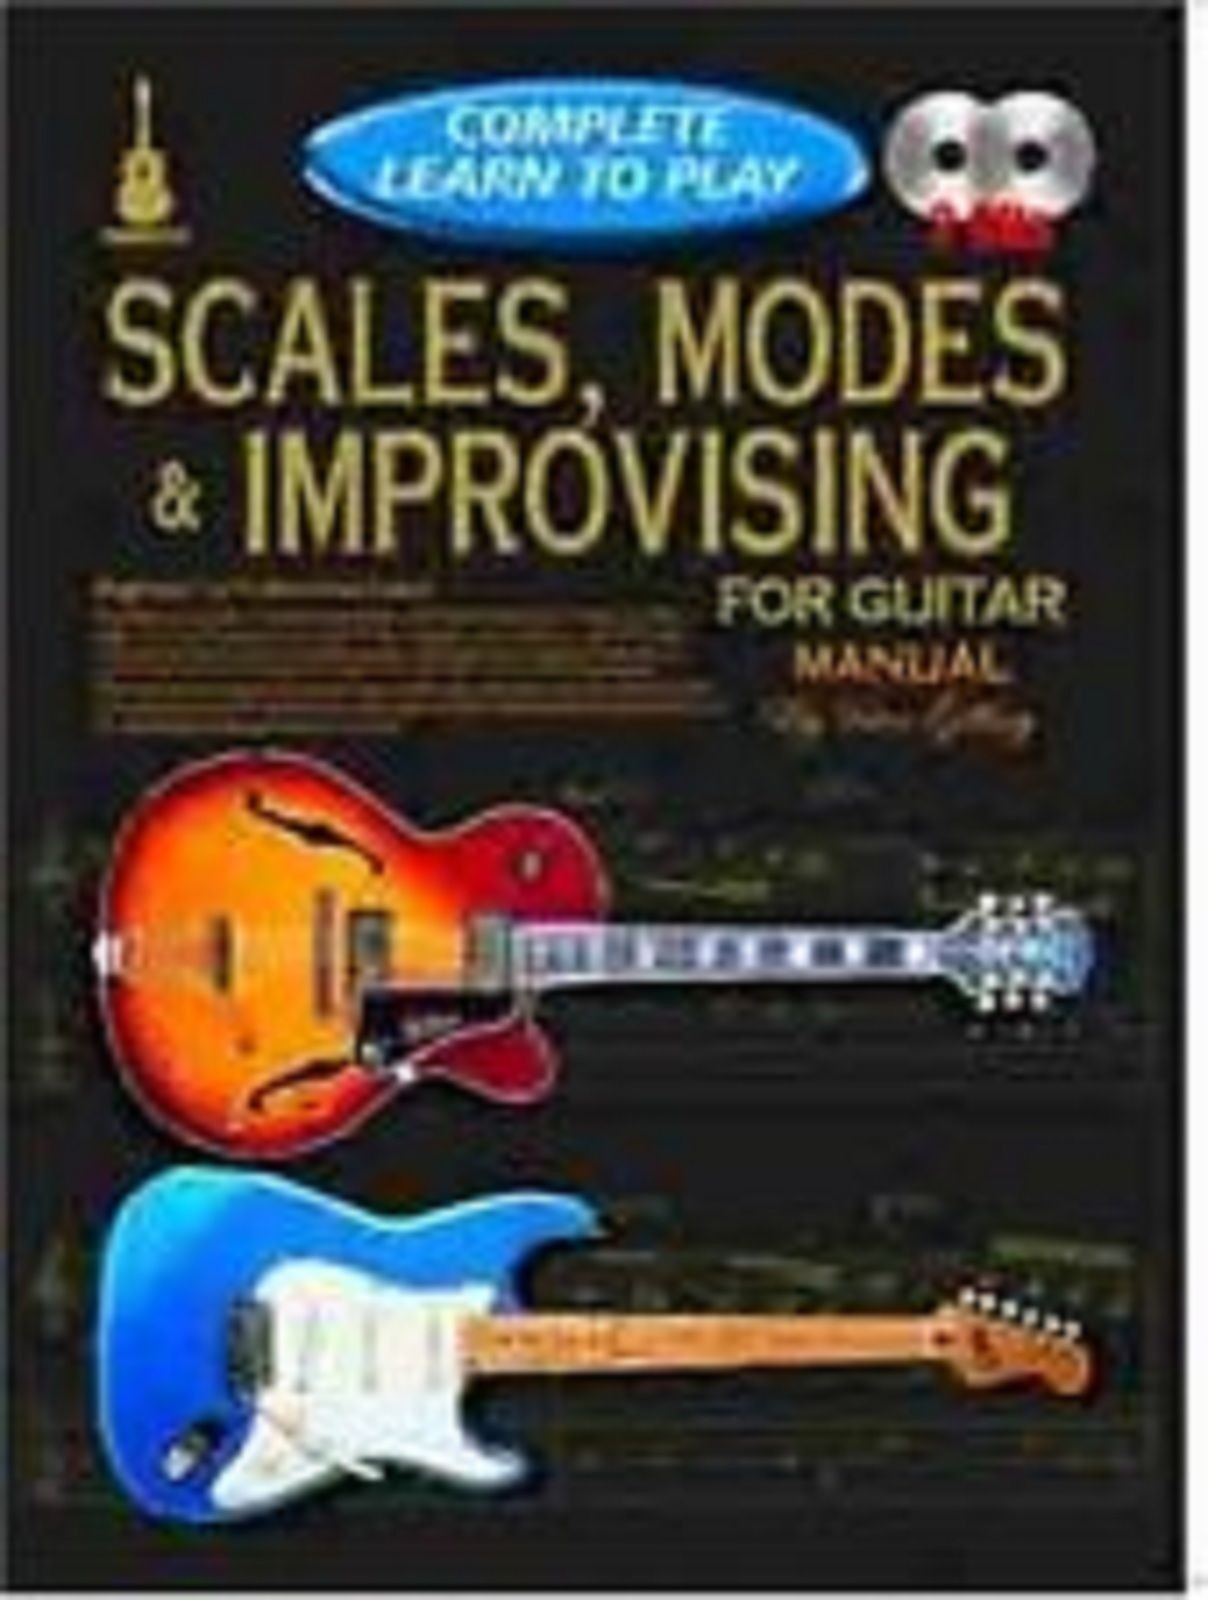 Complete Learn To Play Scales Modes & Improvising Guitar Manual Book CD S103